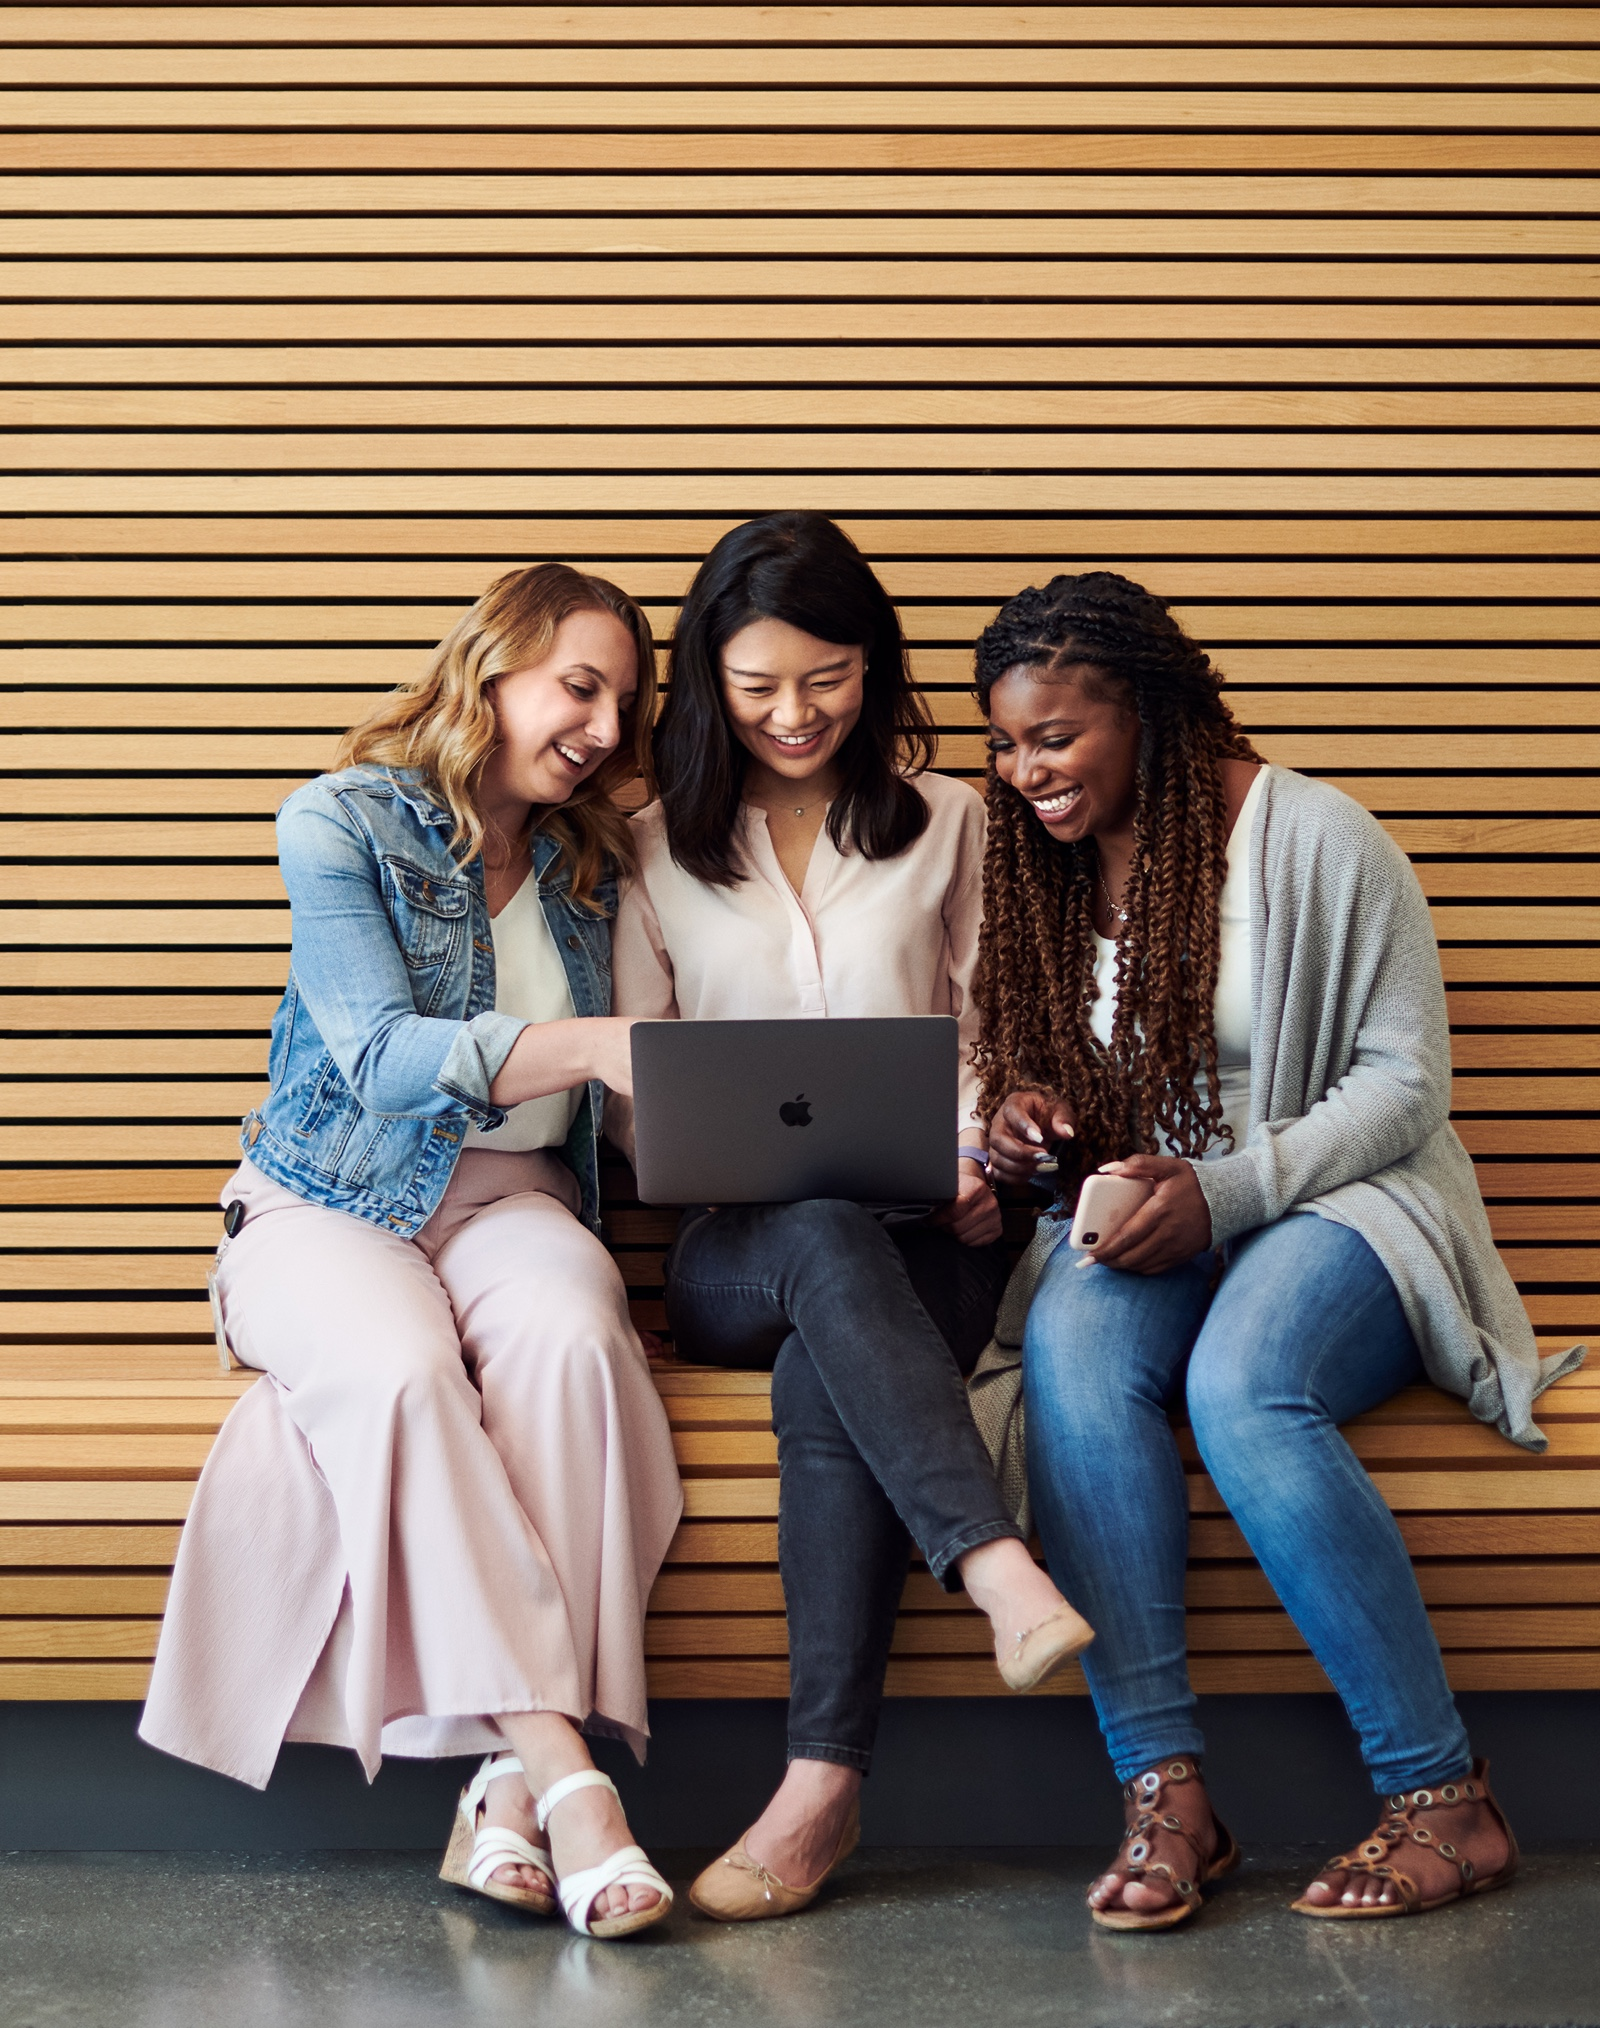 Three female Apple employees sit together on a bench while looking at a MacBook.